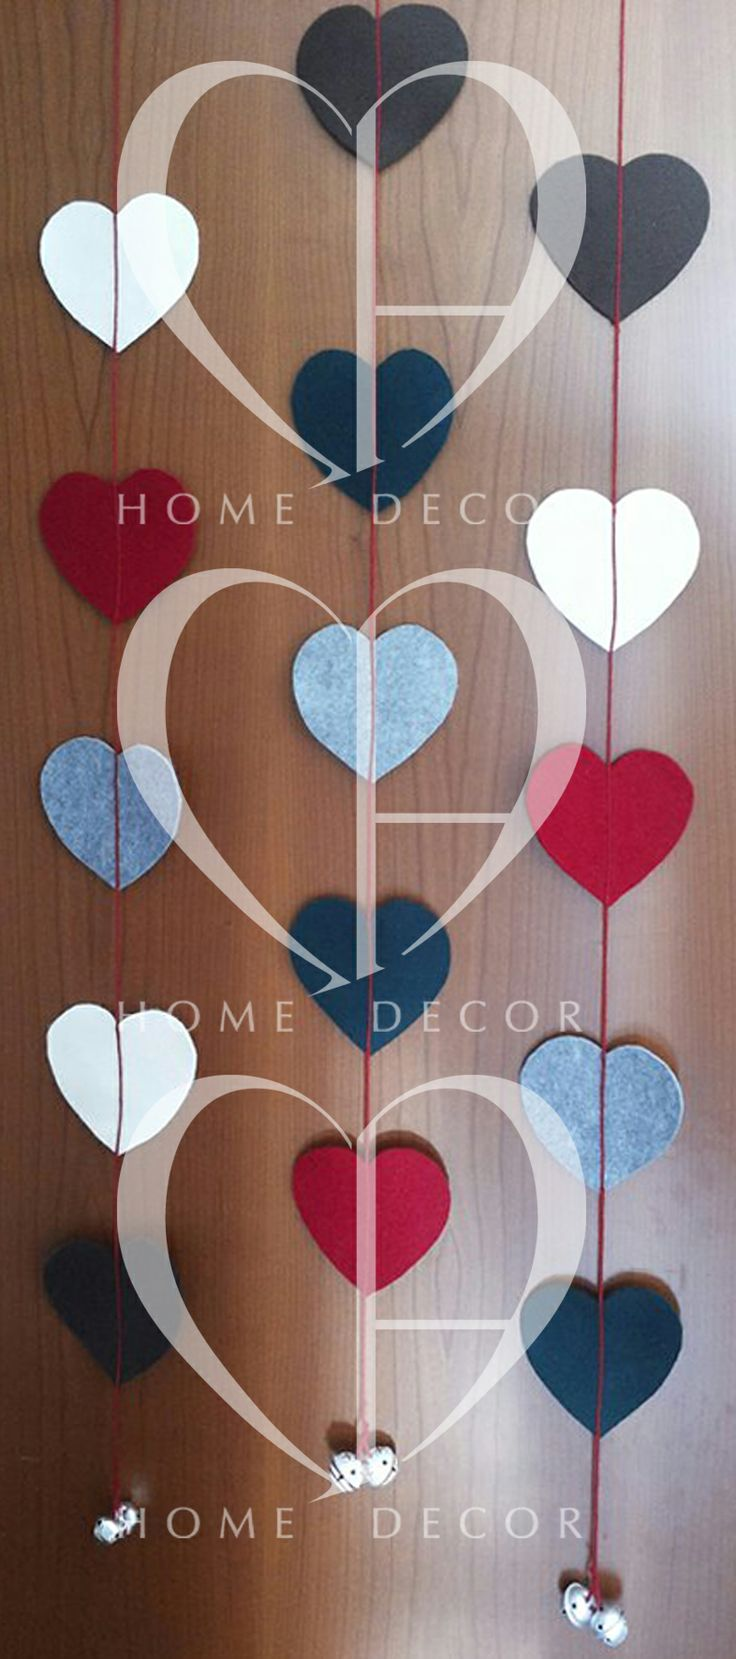 Hang Window / door hanger made with felt hearts in brushed cascaded with rattles mascot to close.